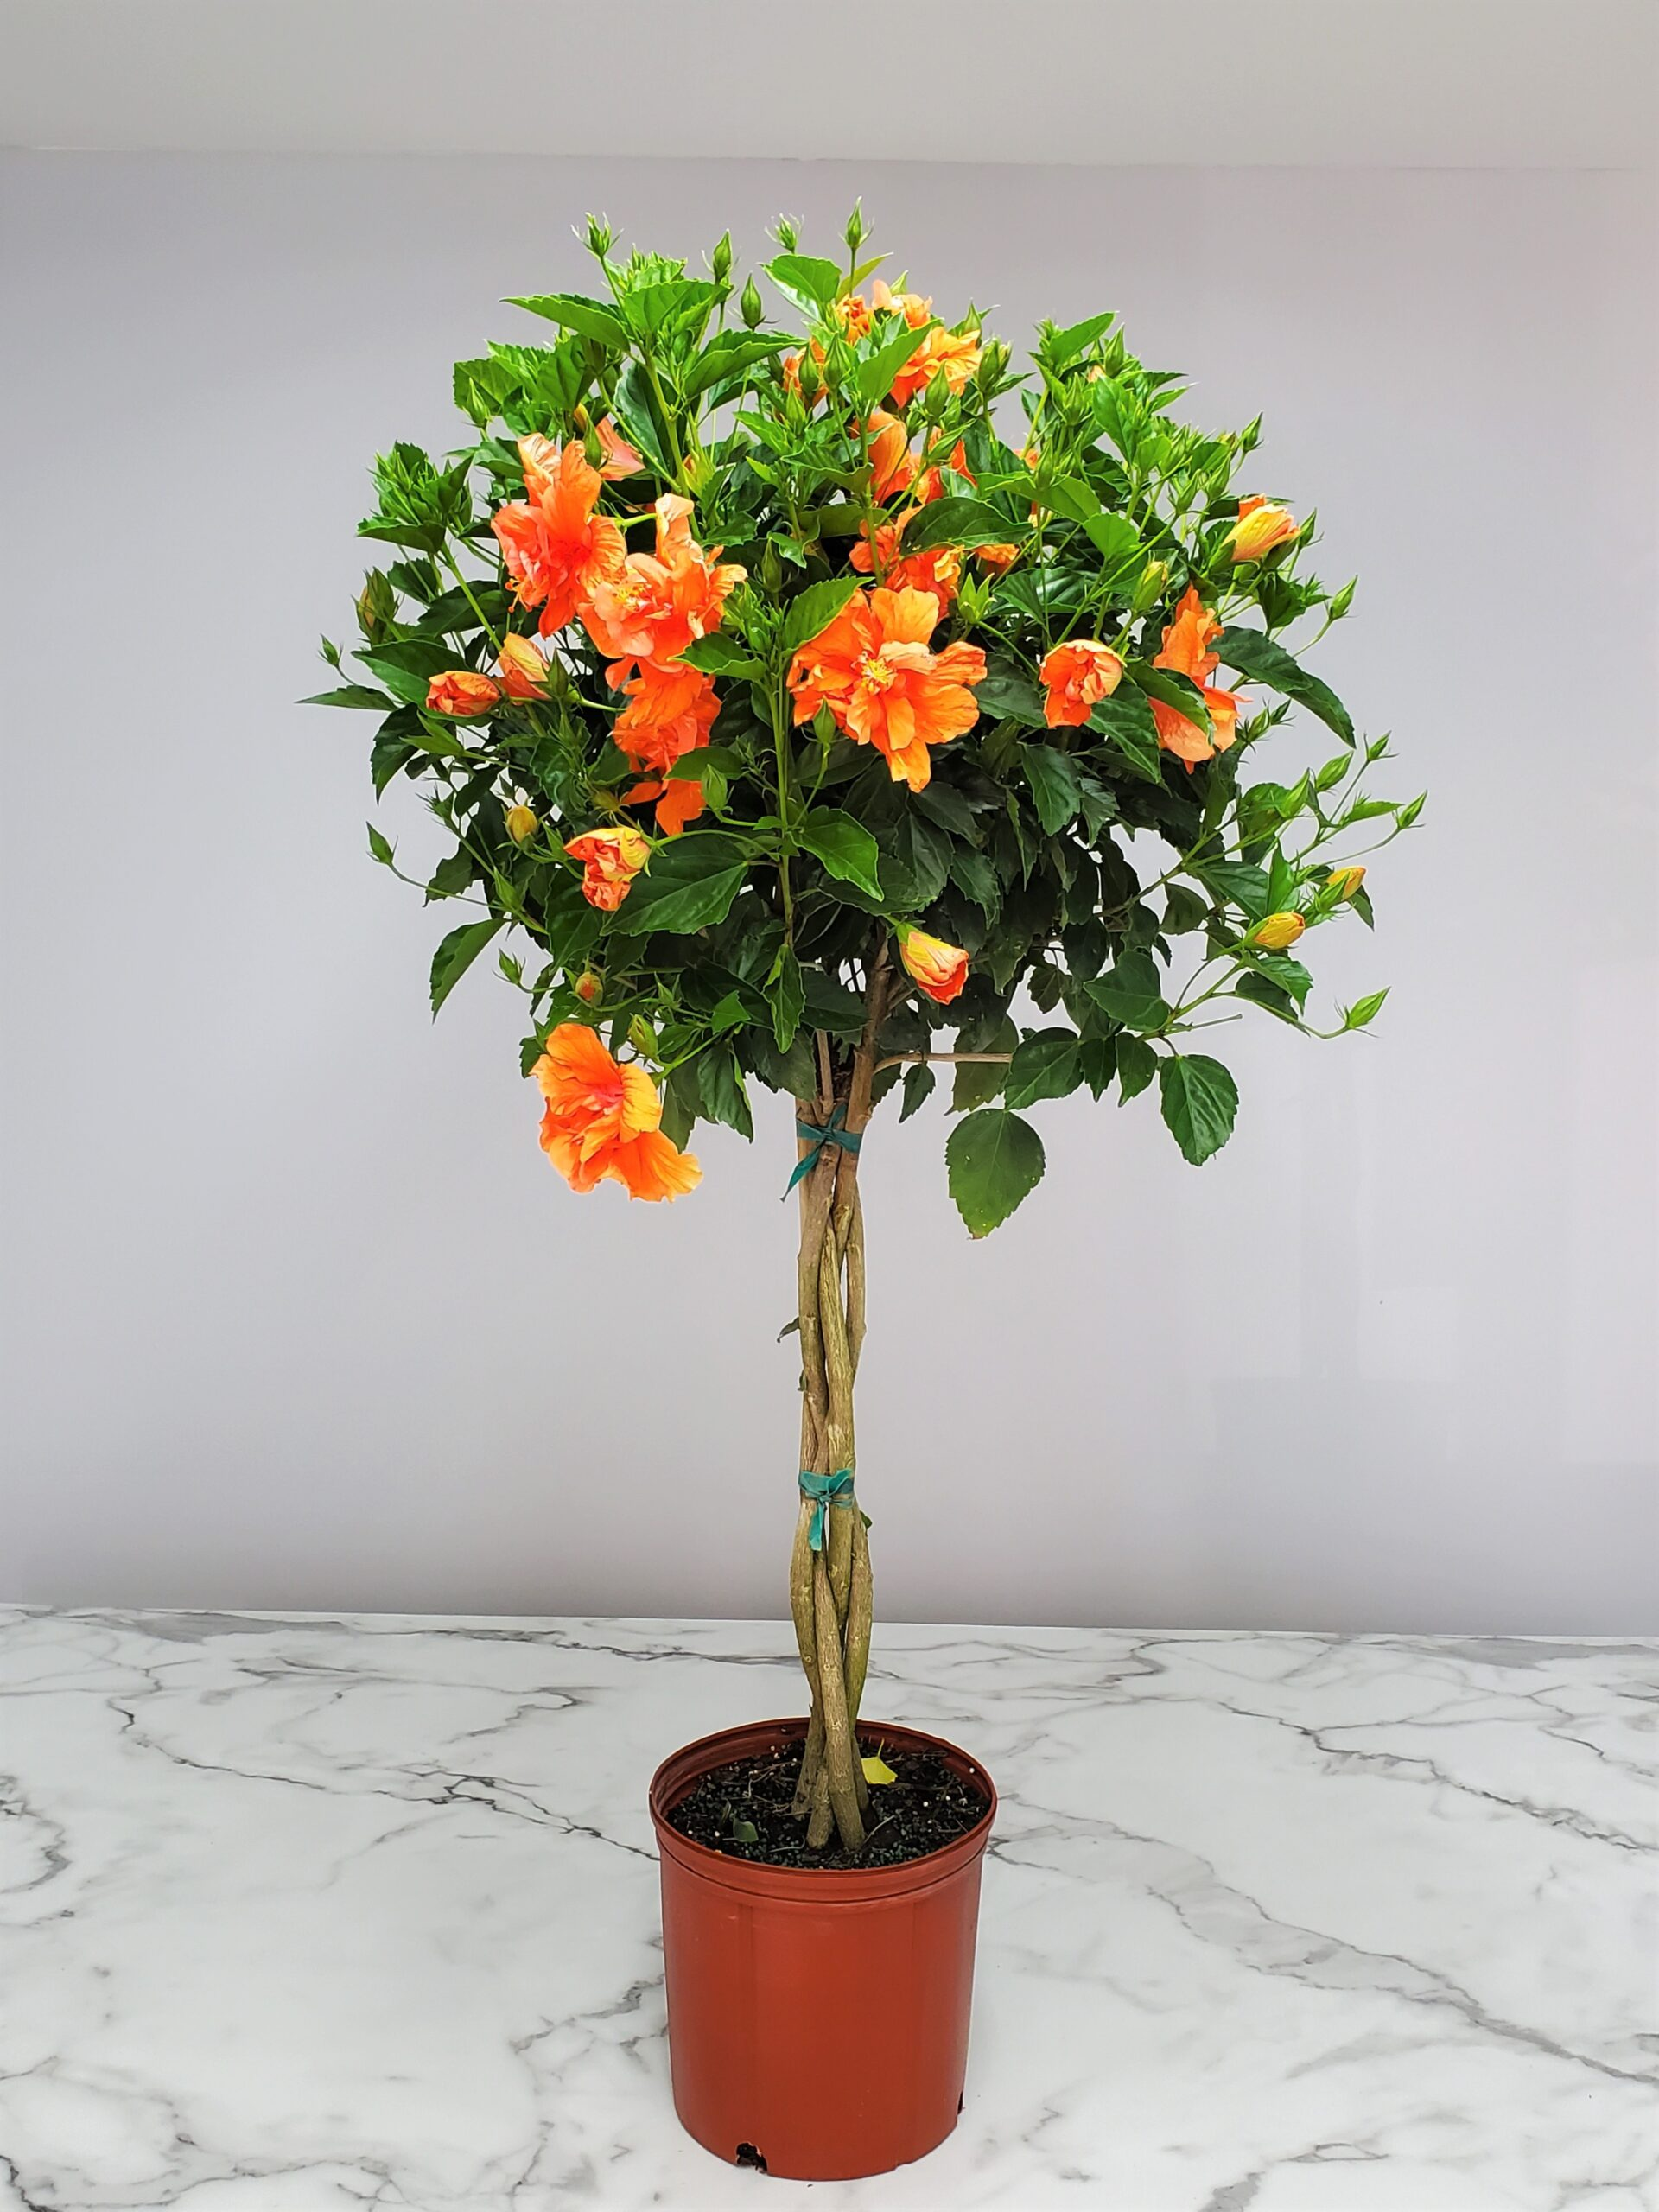 Braided Hibiscus Tree Peach Double Flower 3 Gallon